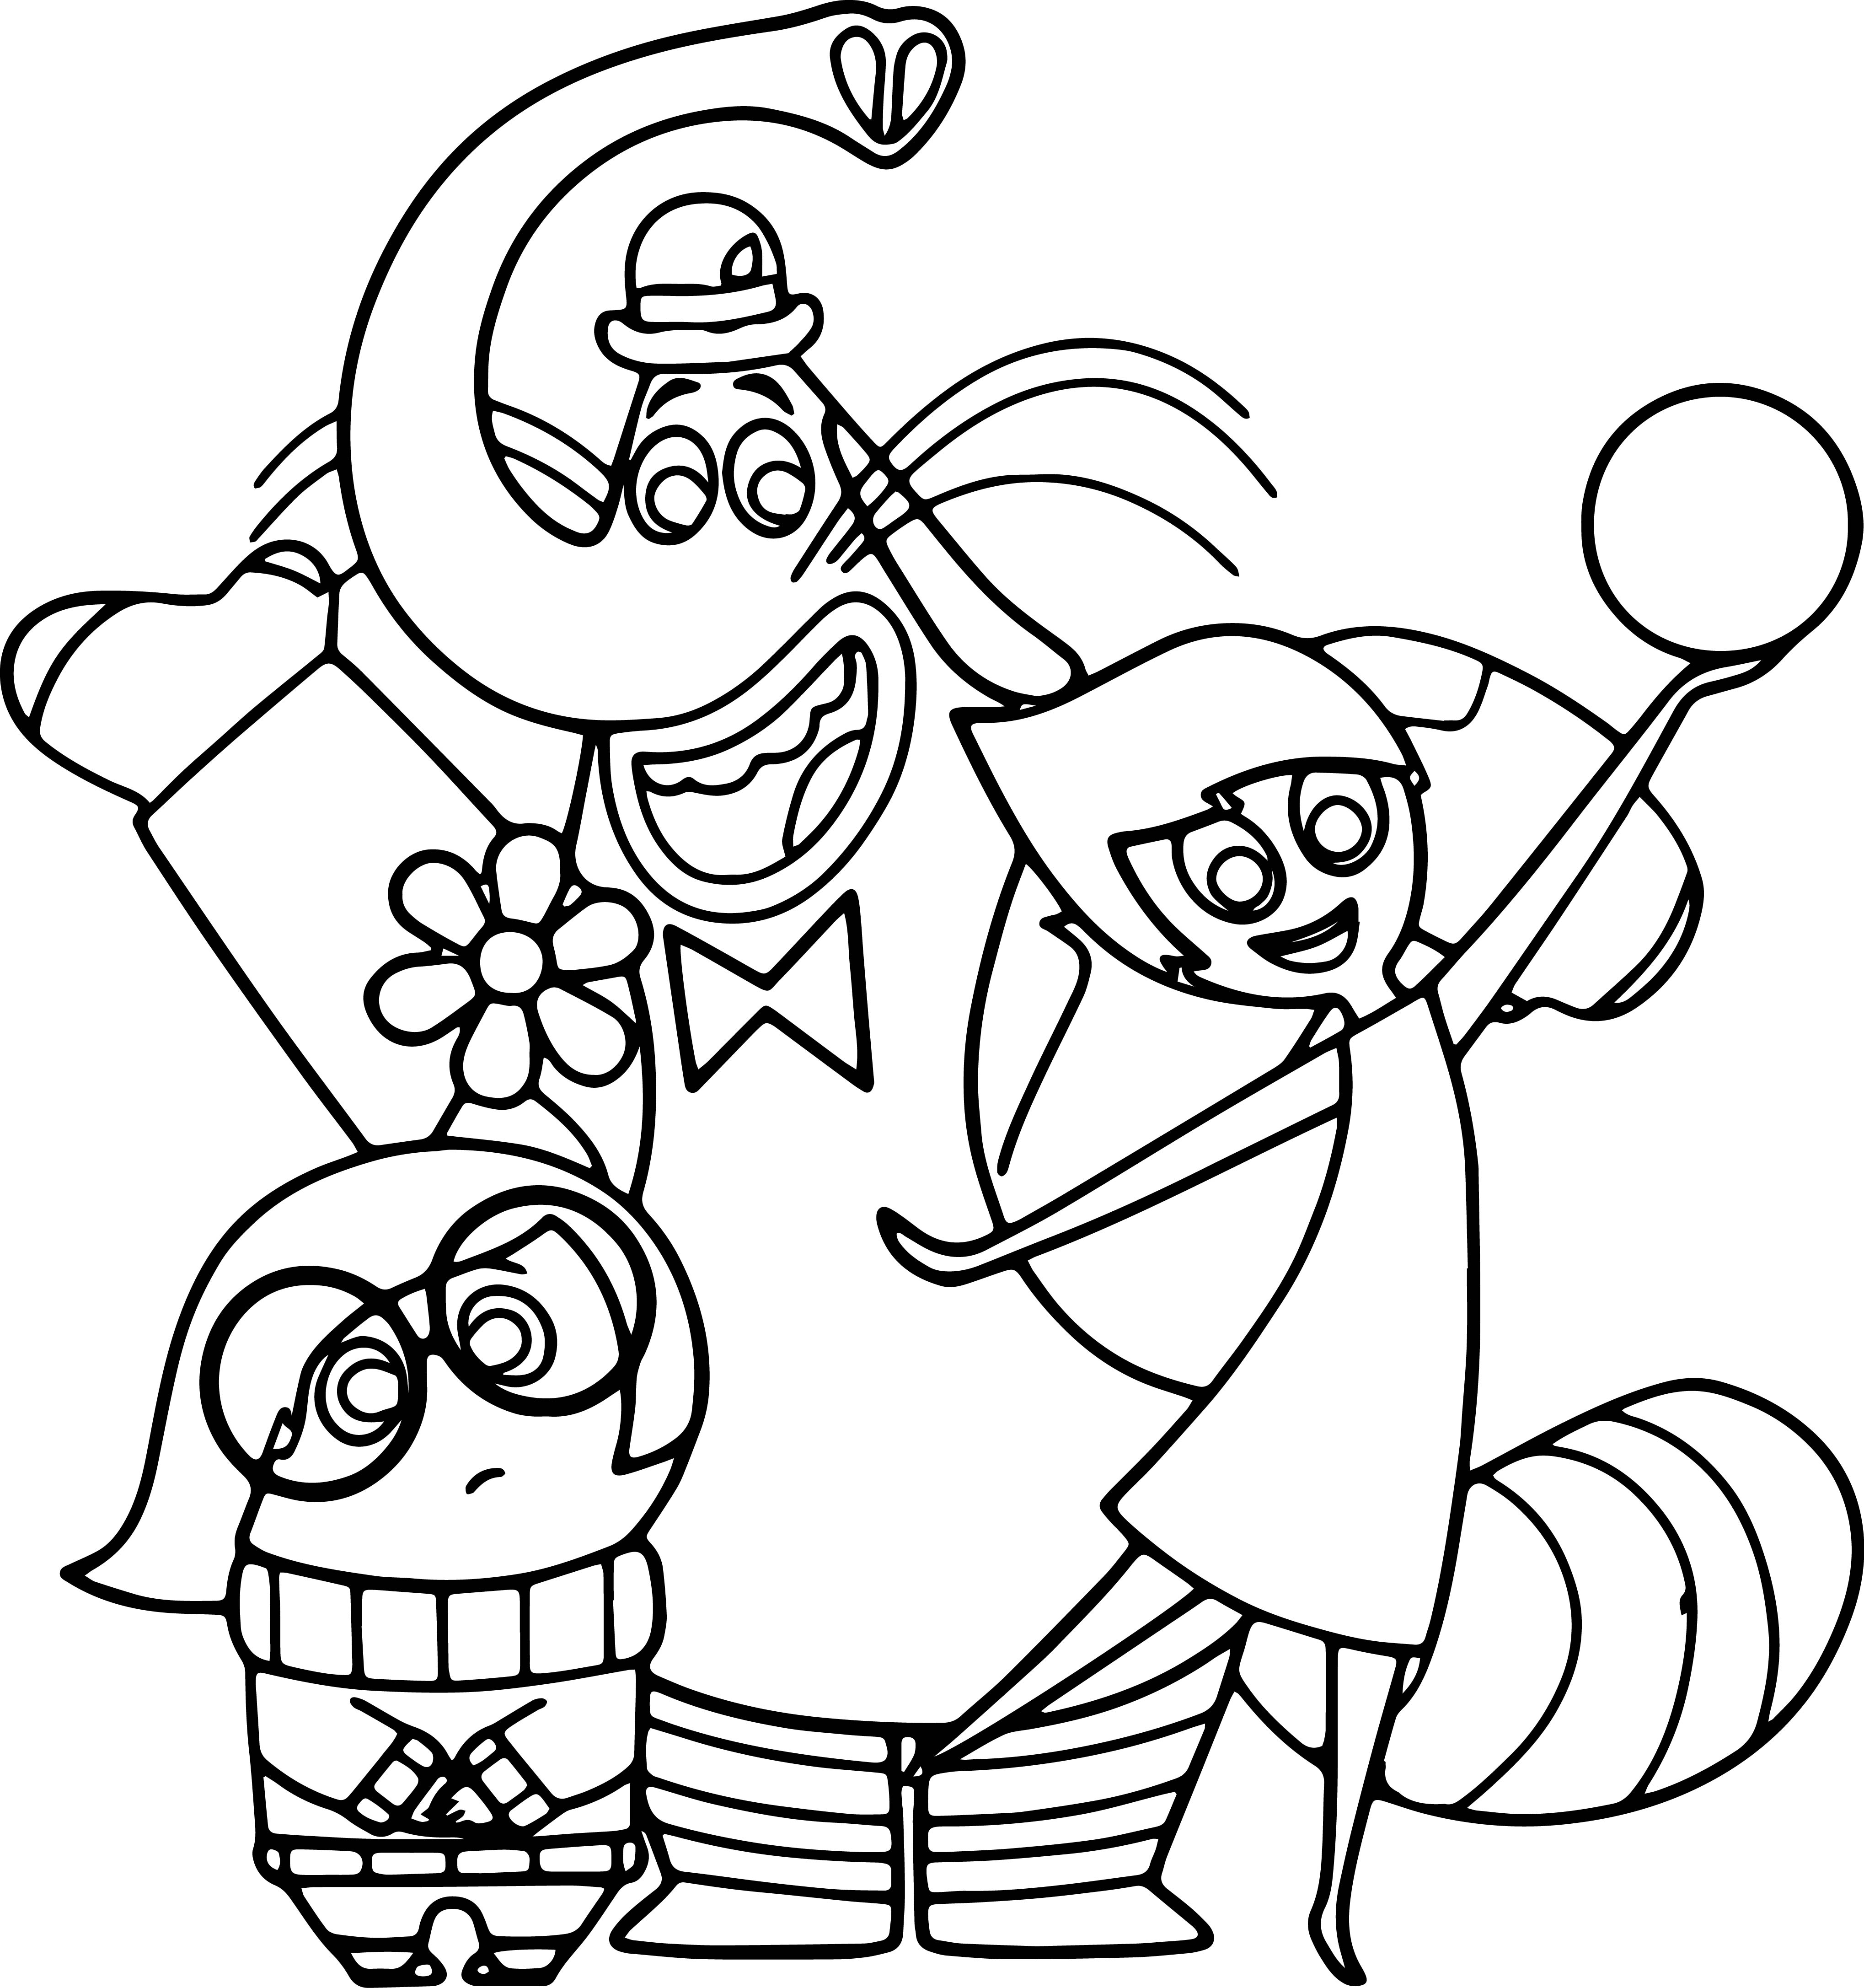 Joy Sadness Bingbong Coloring Pages